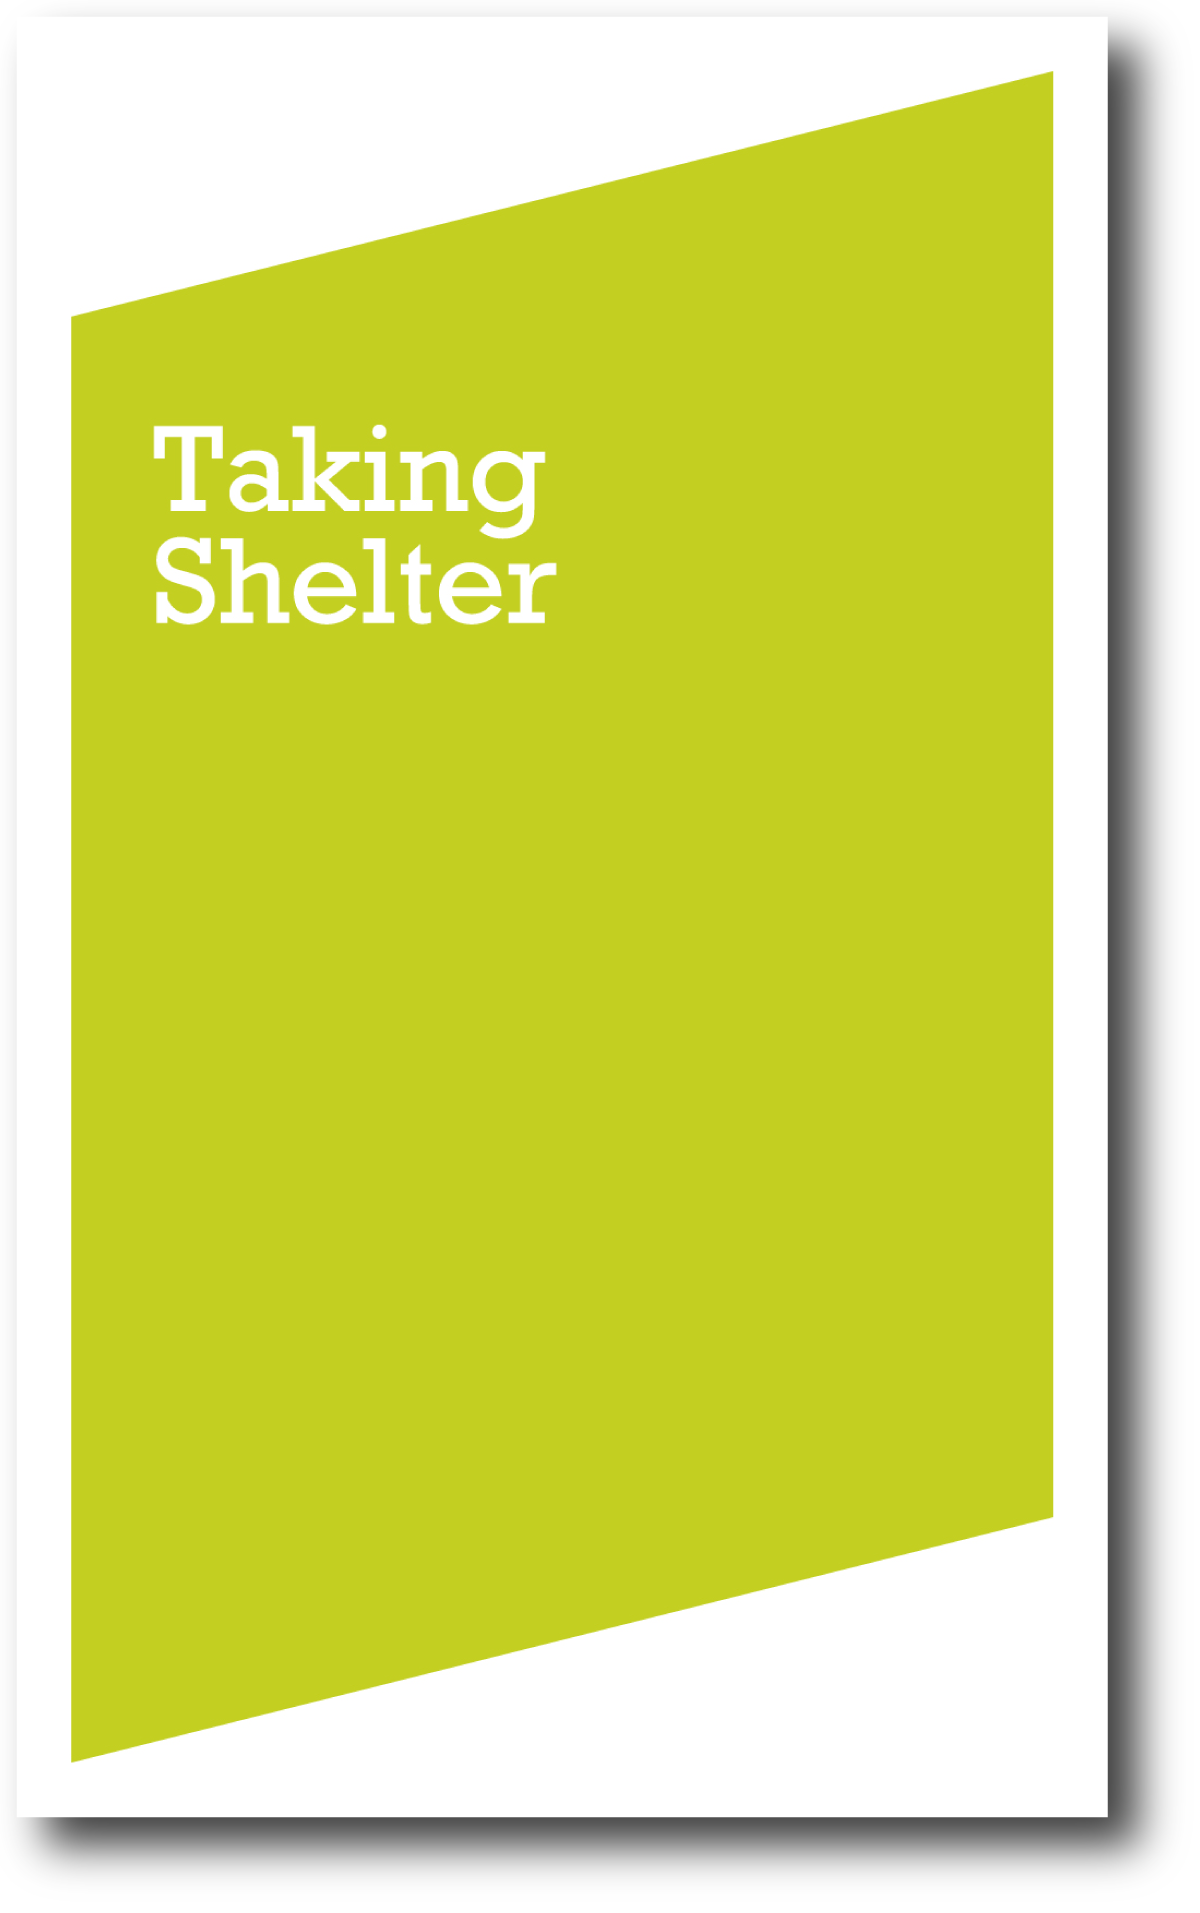 Taking Shelter , published by Bureau for Open Culture, 2008; designed by Nate Padavick;40 pages;8.25 x 5 inches